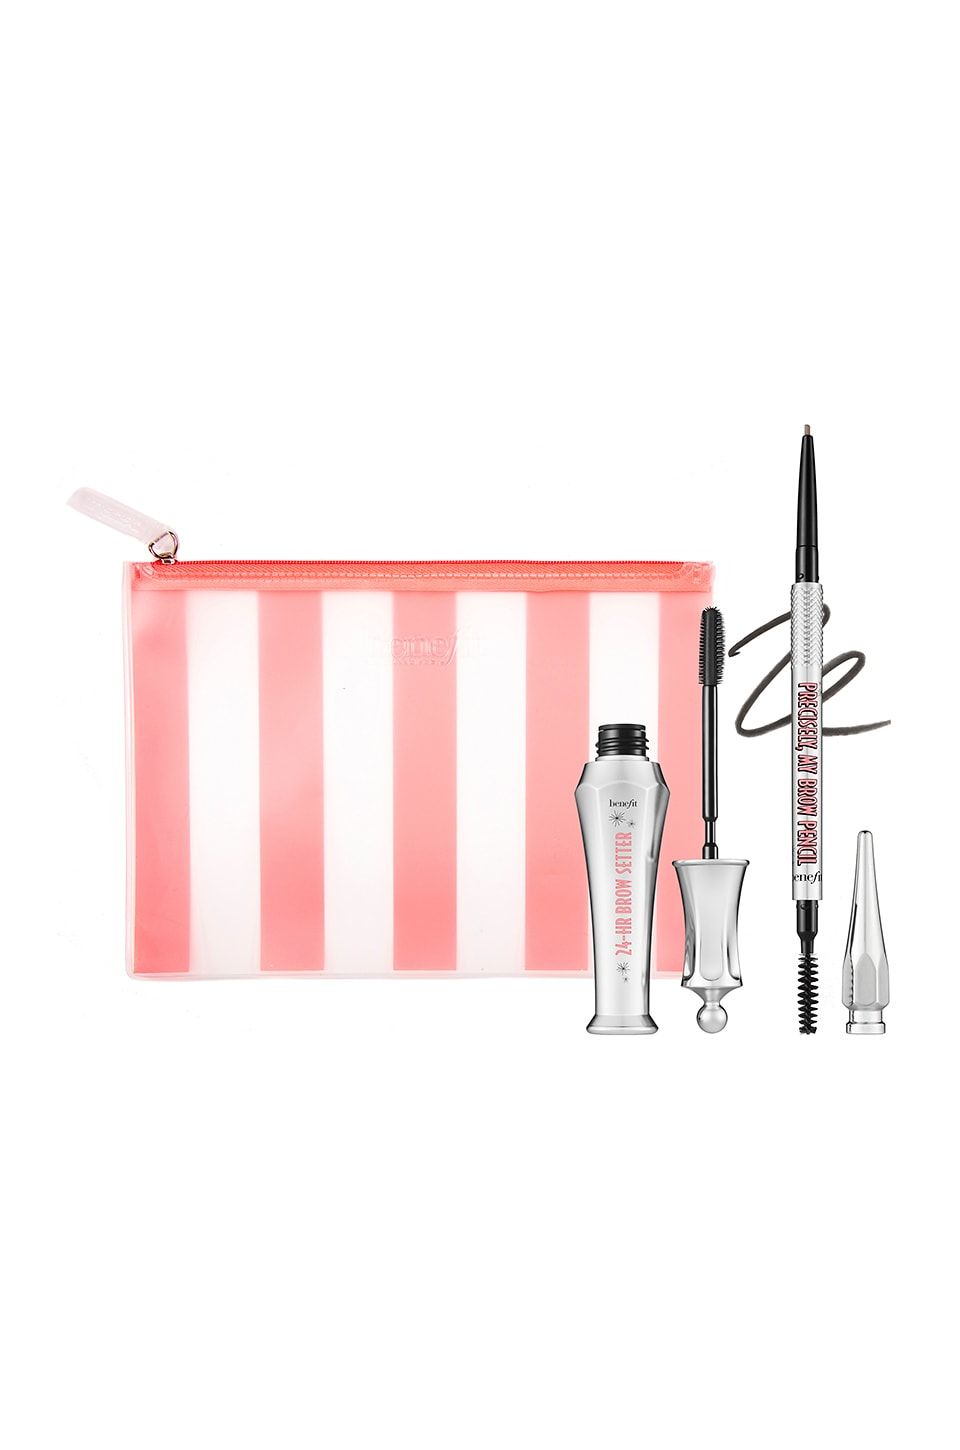 BENEFIT COSMETICS BROWS COME NATURALLY KIT